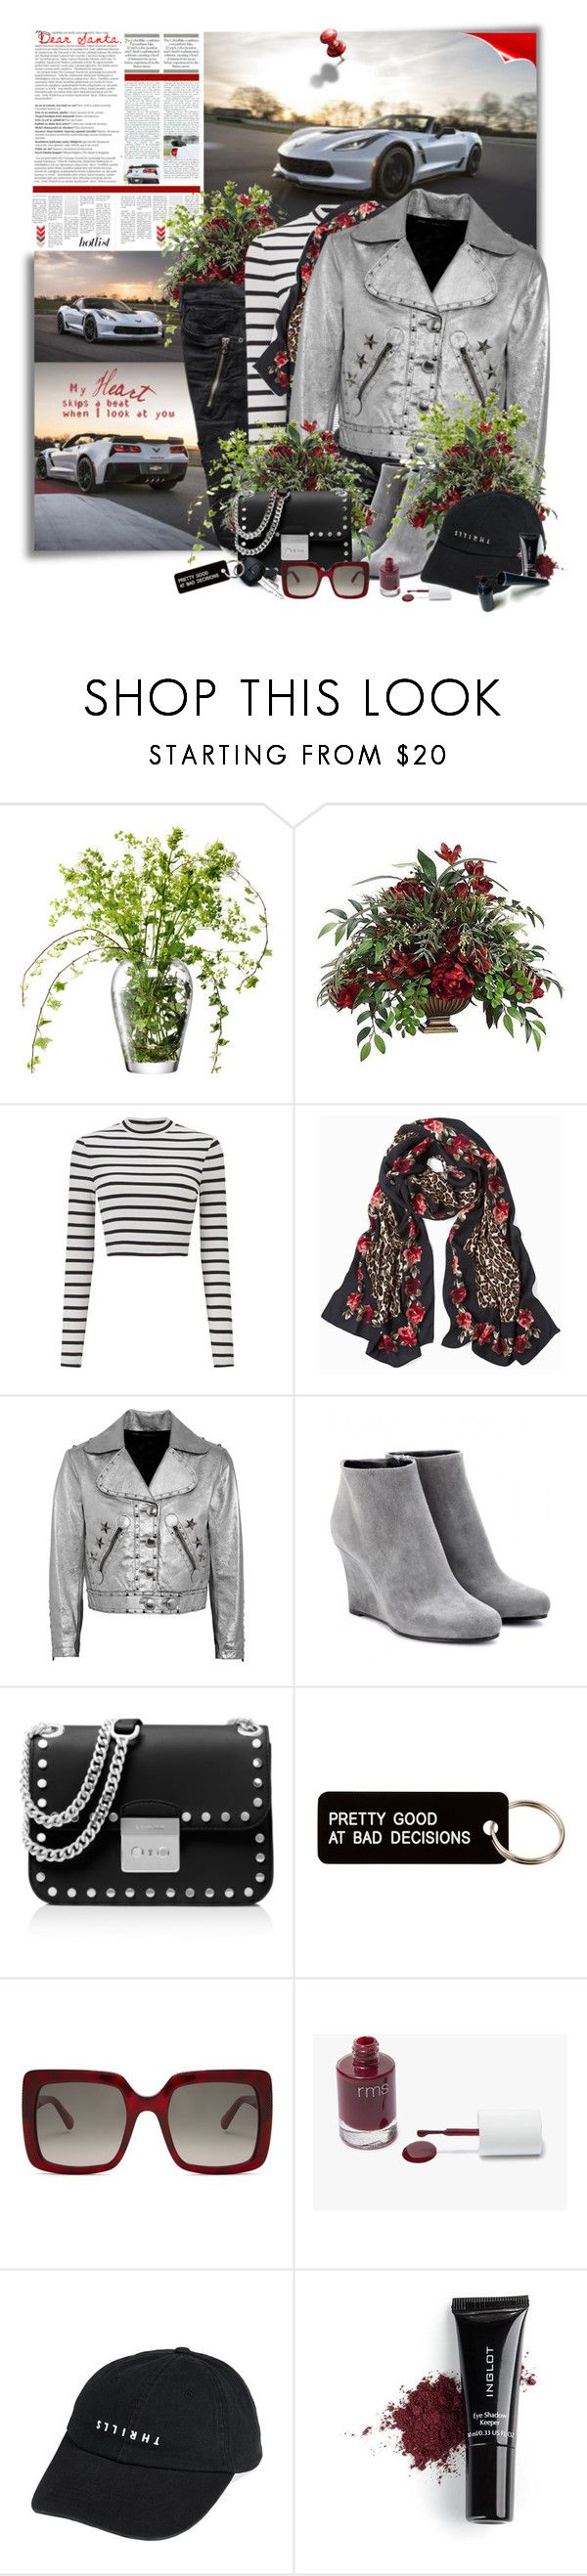 """""""My Heart Skips a Beat"""" by summersunshinesk7 ❤ liked on Polyvore featuring WALL, Oris, LSA International, Miss Selfridge, White House Black Market, Marc by Marc Jacobs, Jil Sander, MICHAEL Michael Kors, Various Projects and STELLA McCARTNEY"""